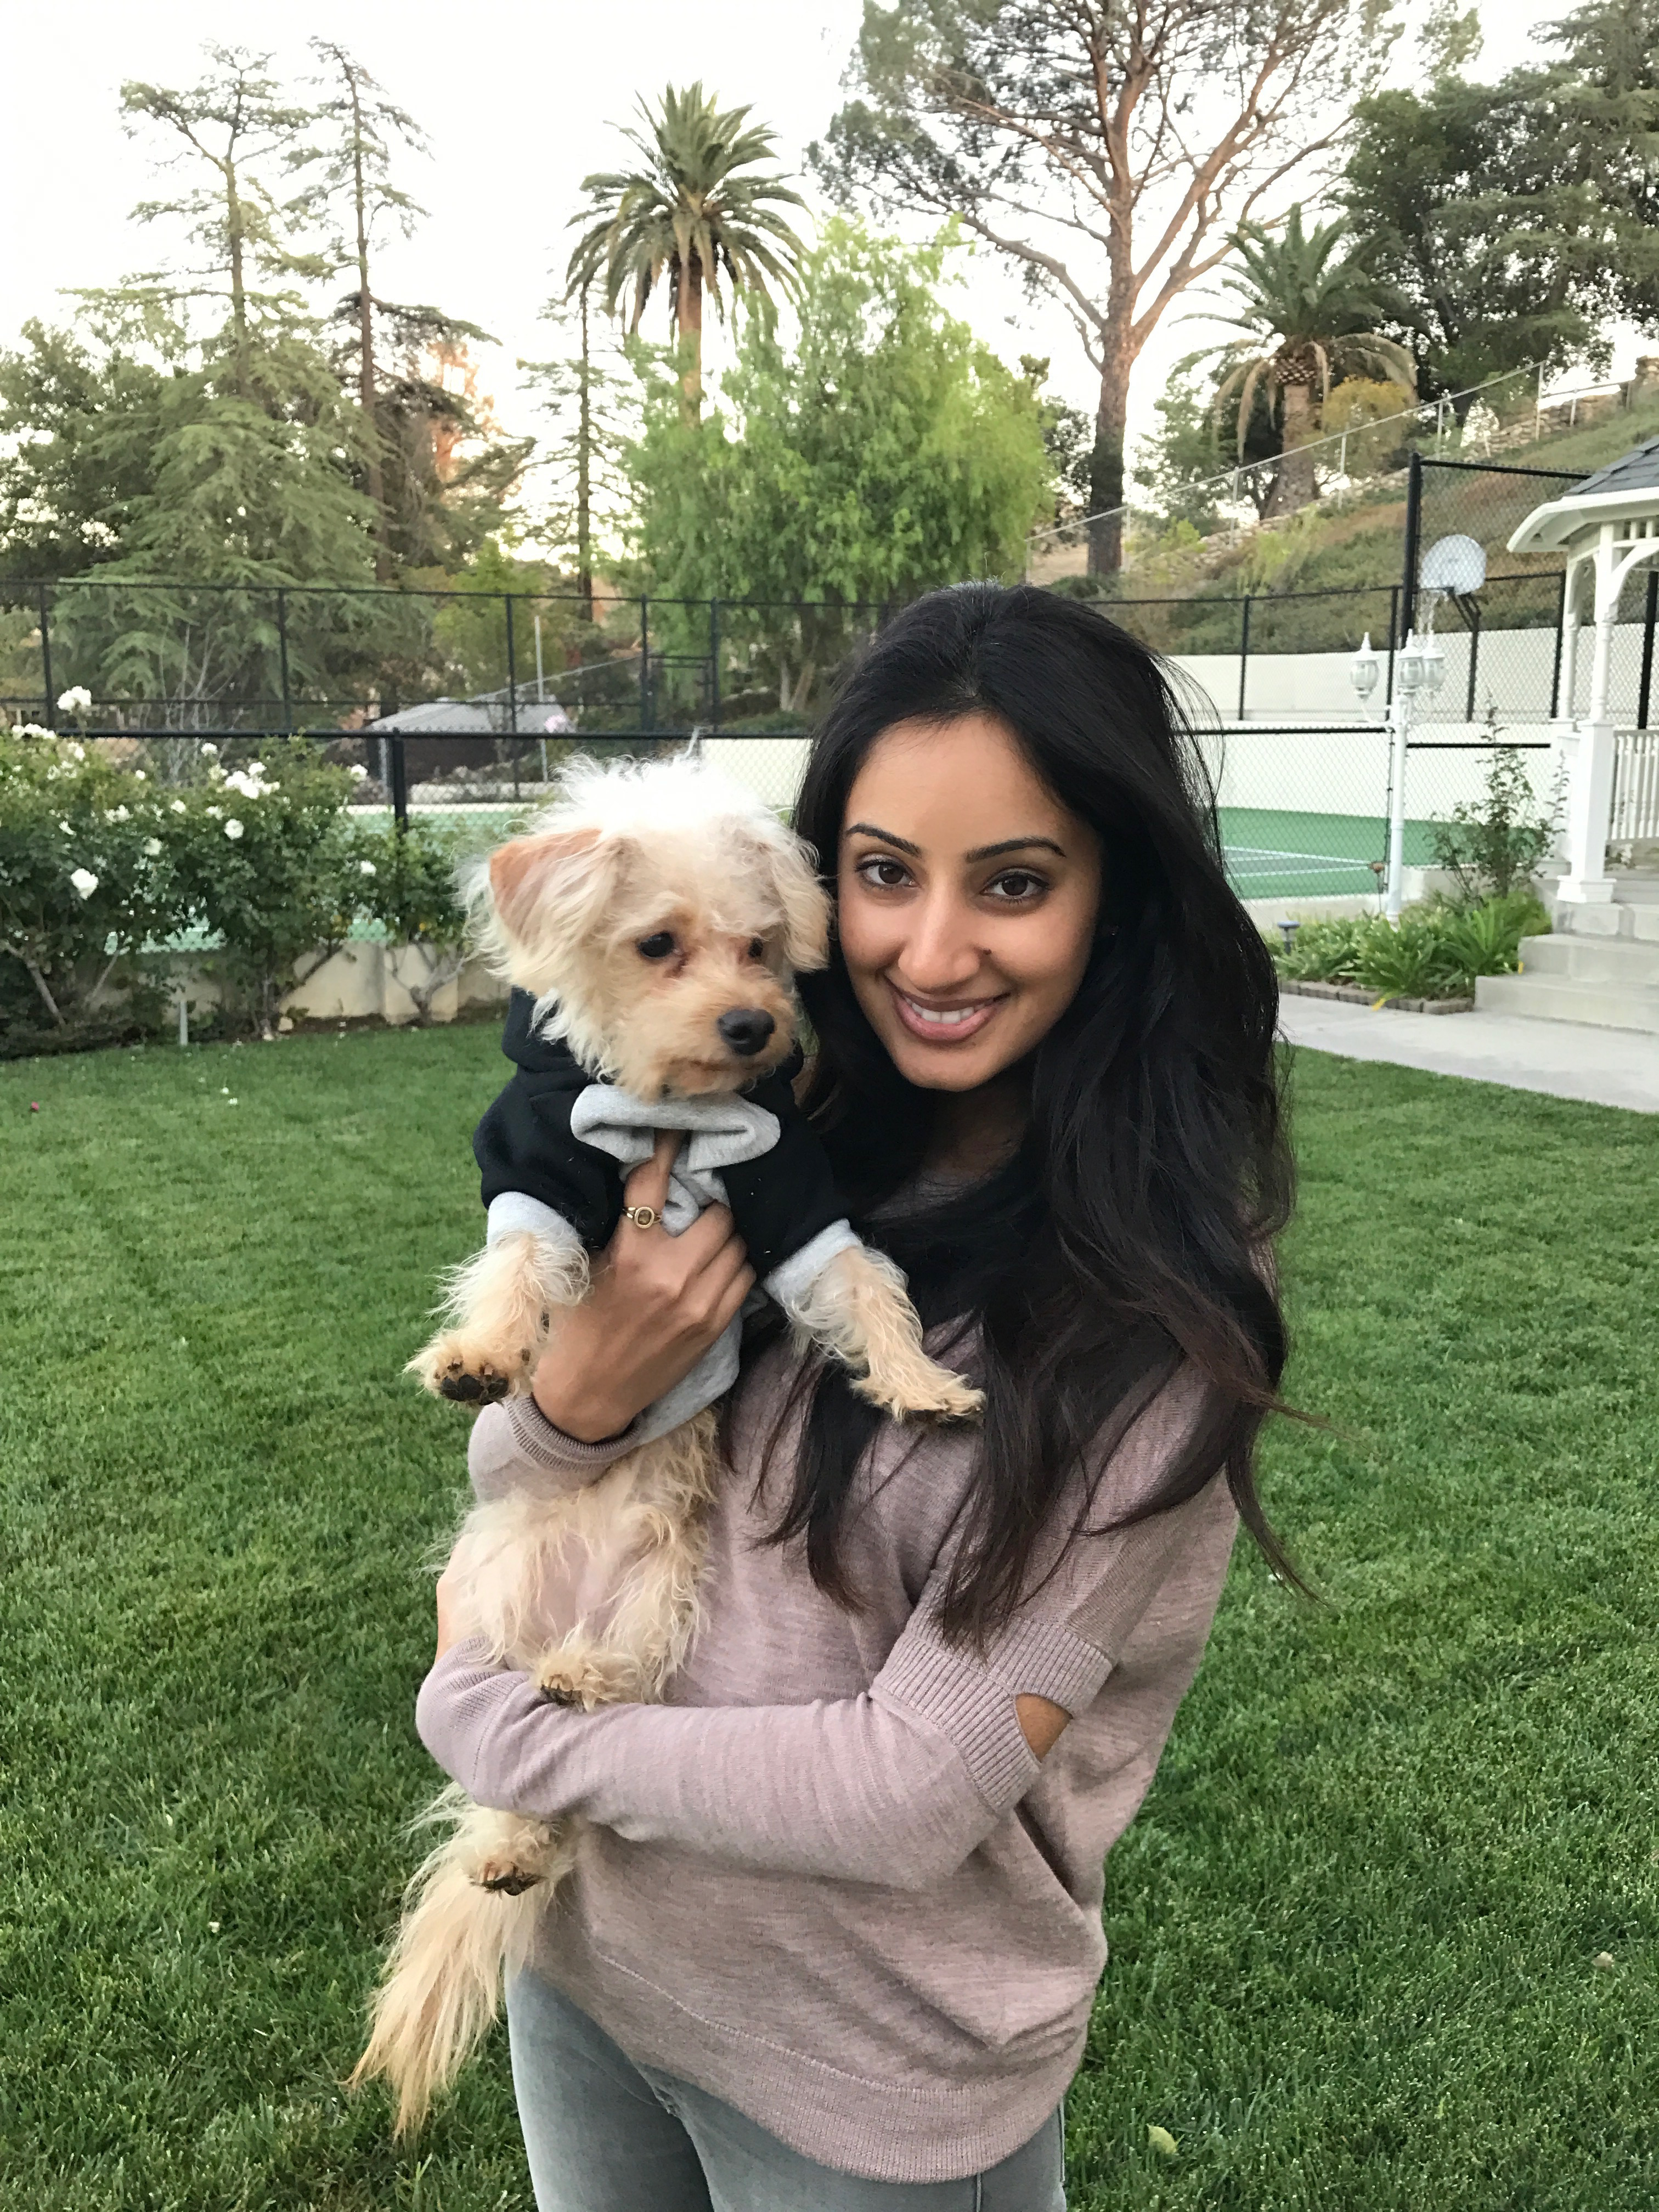 Rashi Khanna Wiese is co-owner of Happy Puppy L.A., which provides dog training and personalized dog care via Puppyland